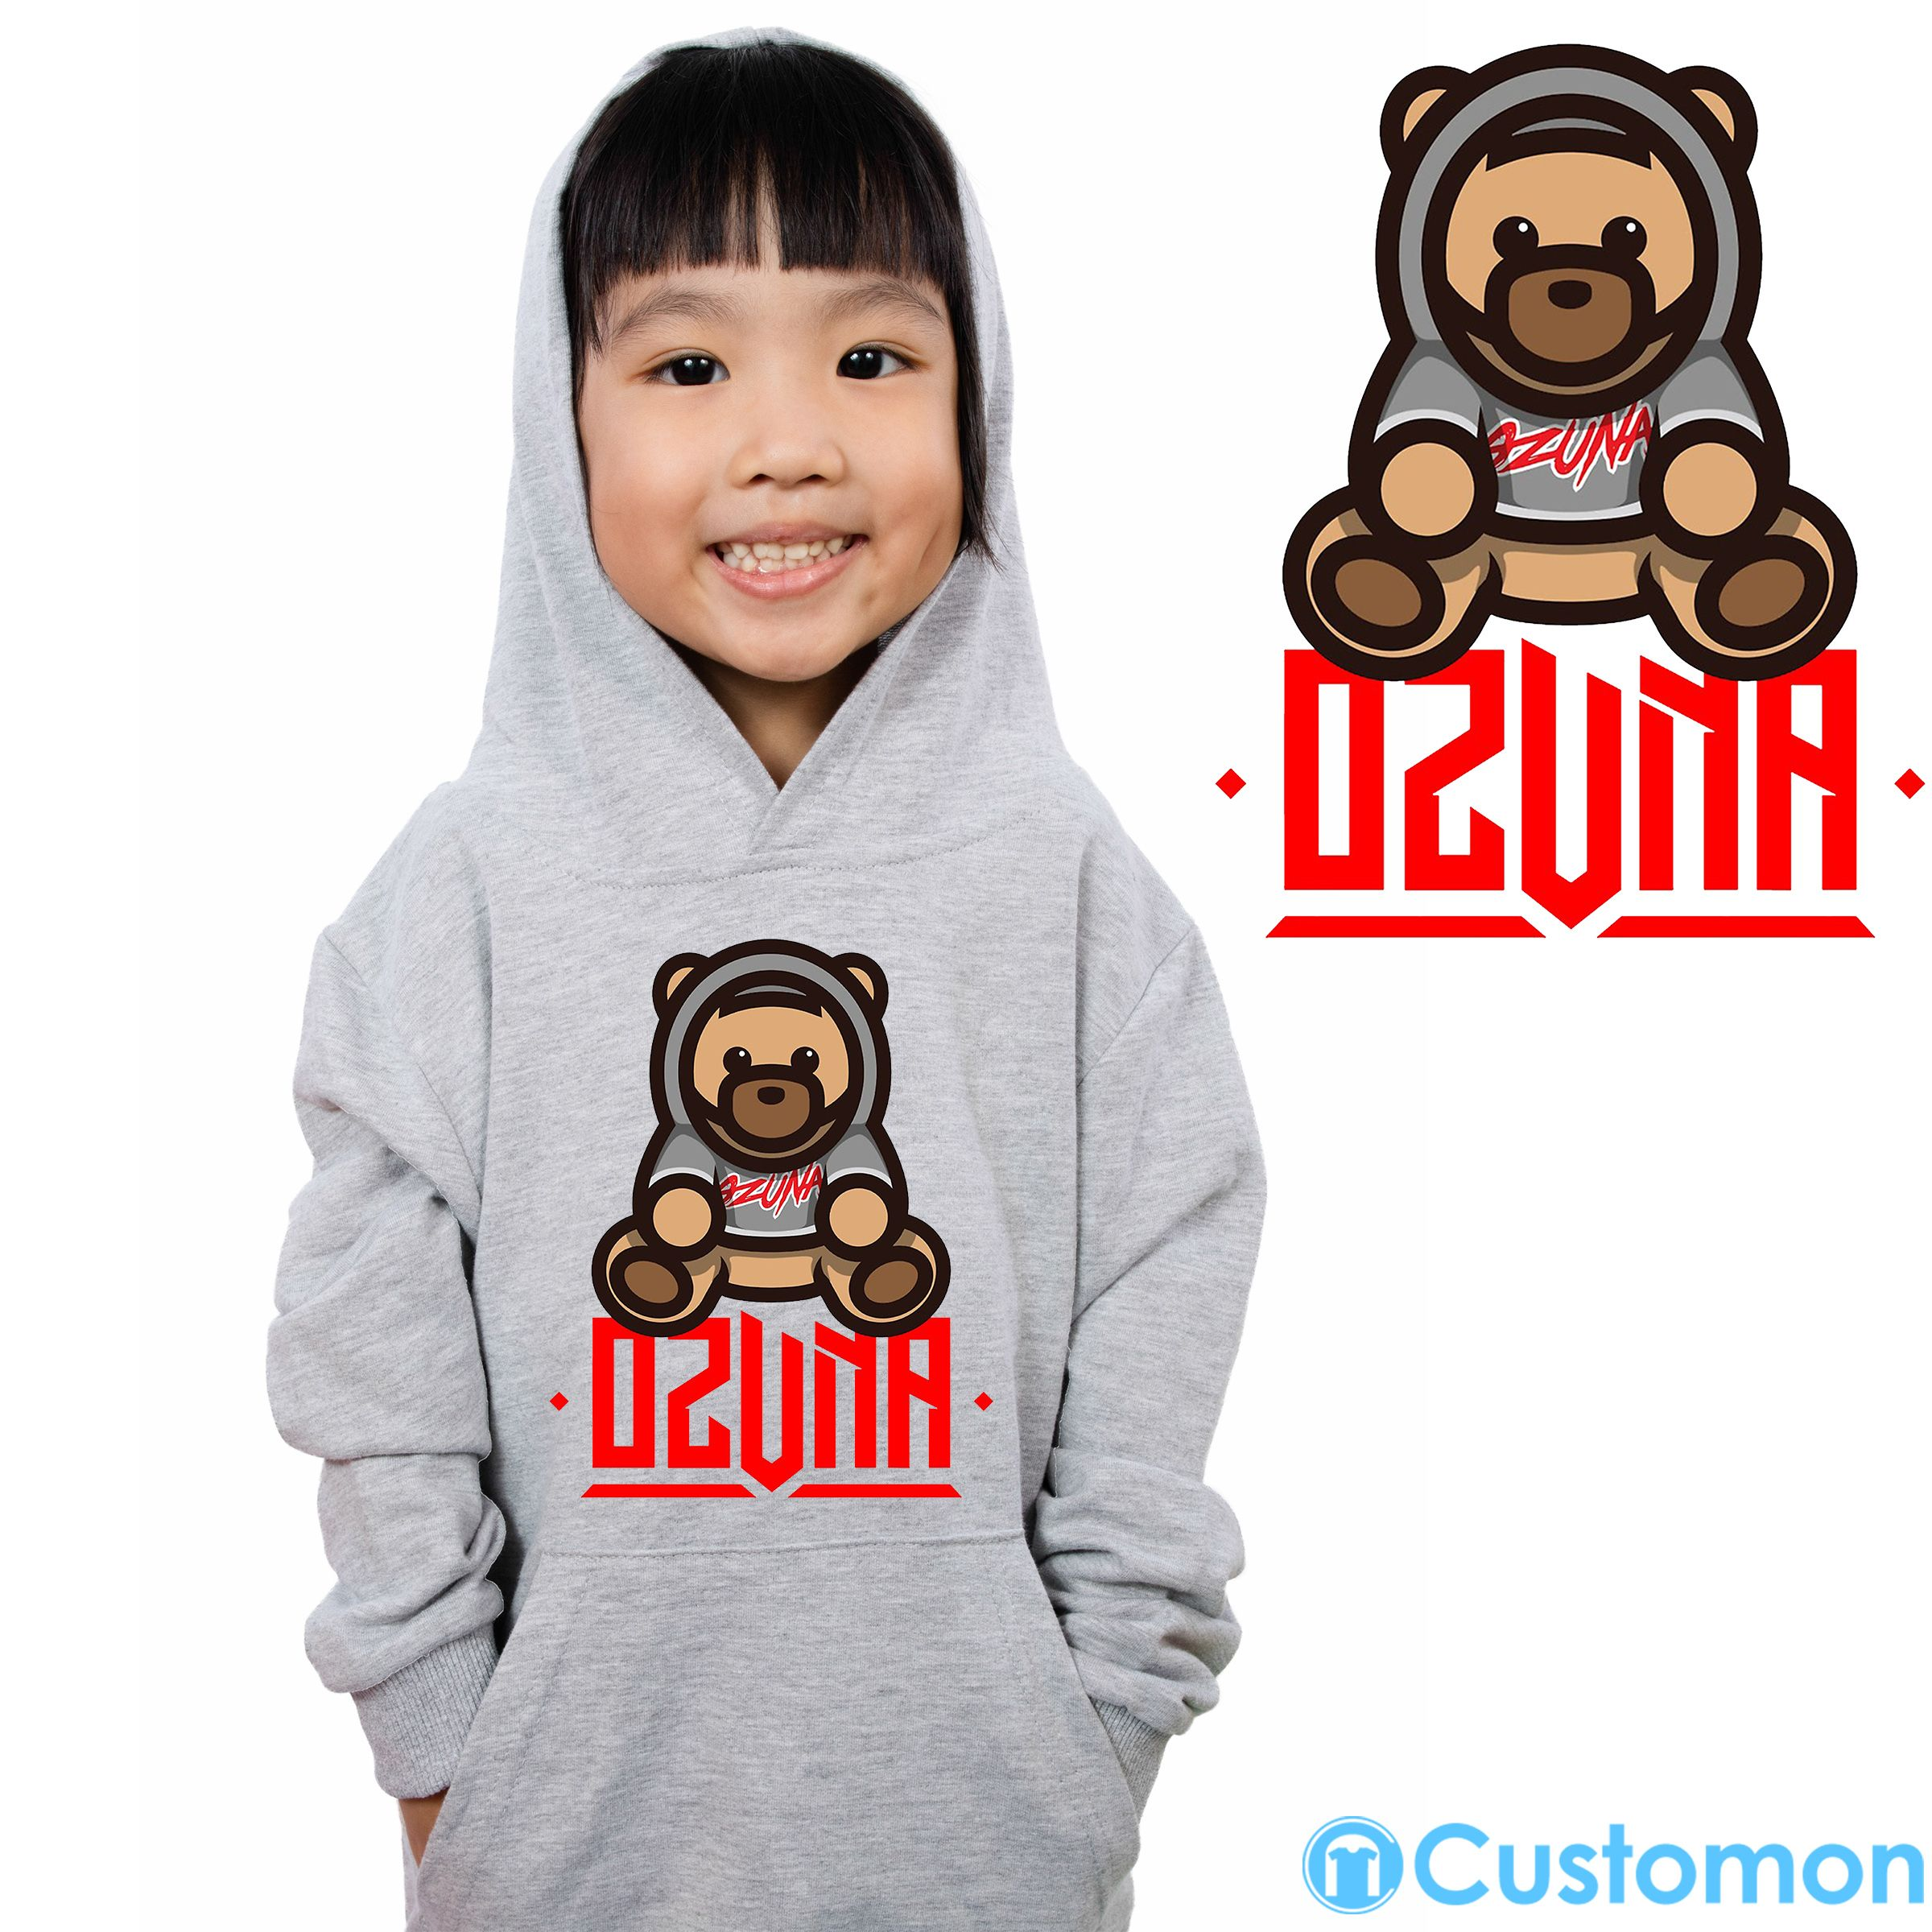 d09d5bfb8aab OZUNA LOGO New Design Kids Hoodie 🐻 - #Ozuna #Odisea #Fenix #Trap #Hits  #latino #oso #teddy #bear #osito #ozunalogo #kids #youth #fashion  #kidshoodie #best ...